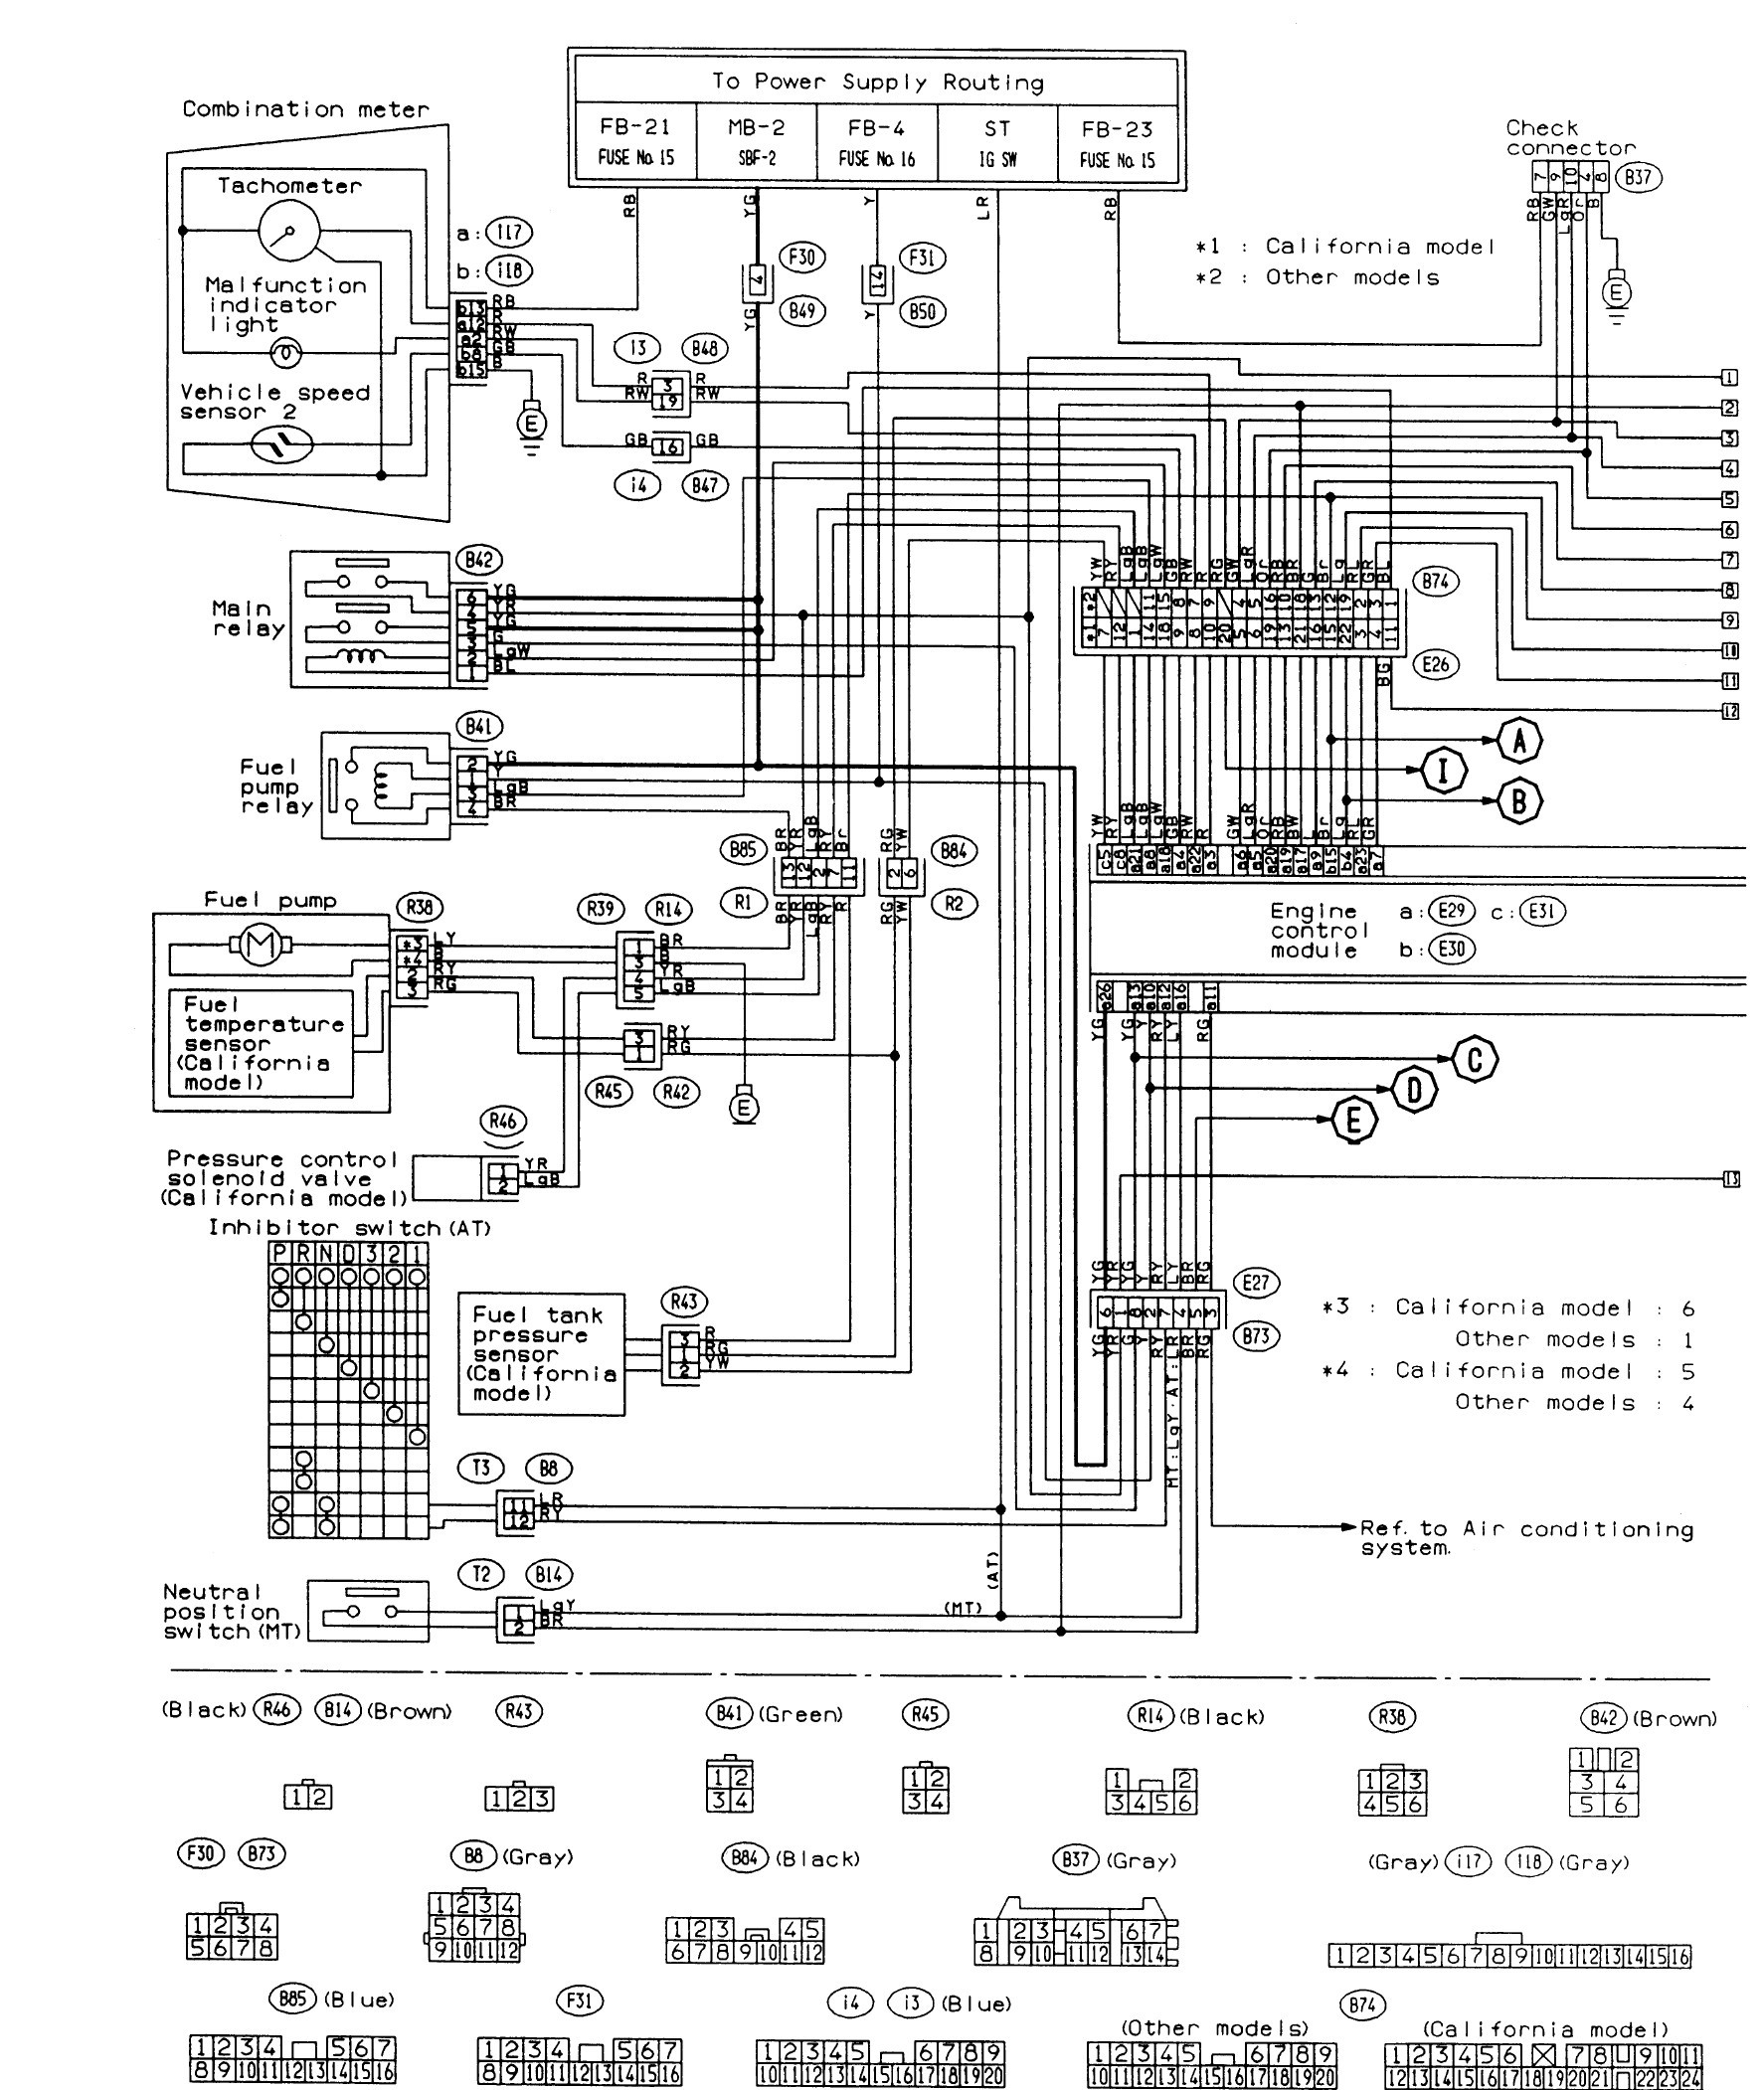 2005 wrx stereo wiring diagram vista 20p subaru engine my